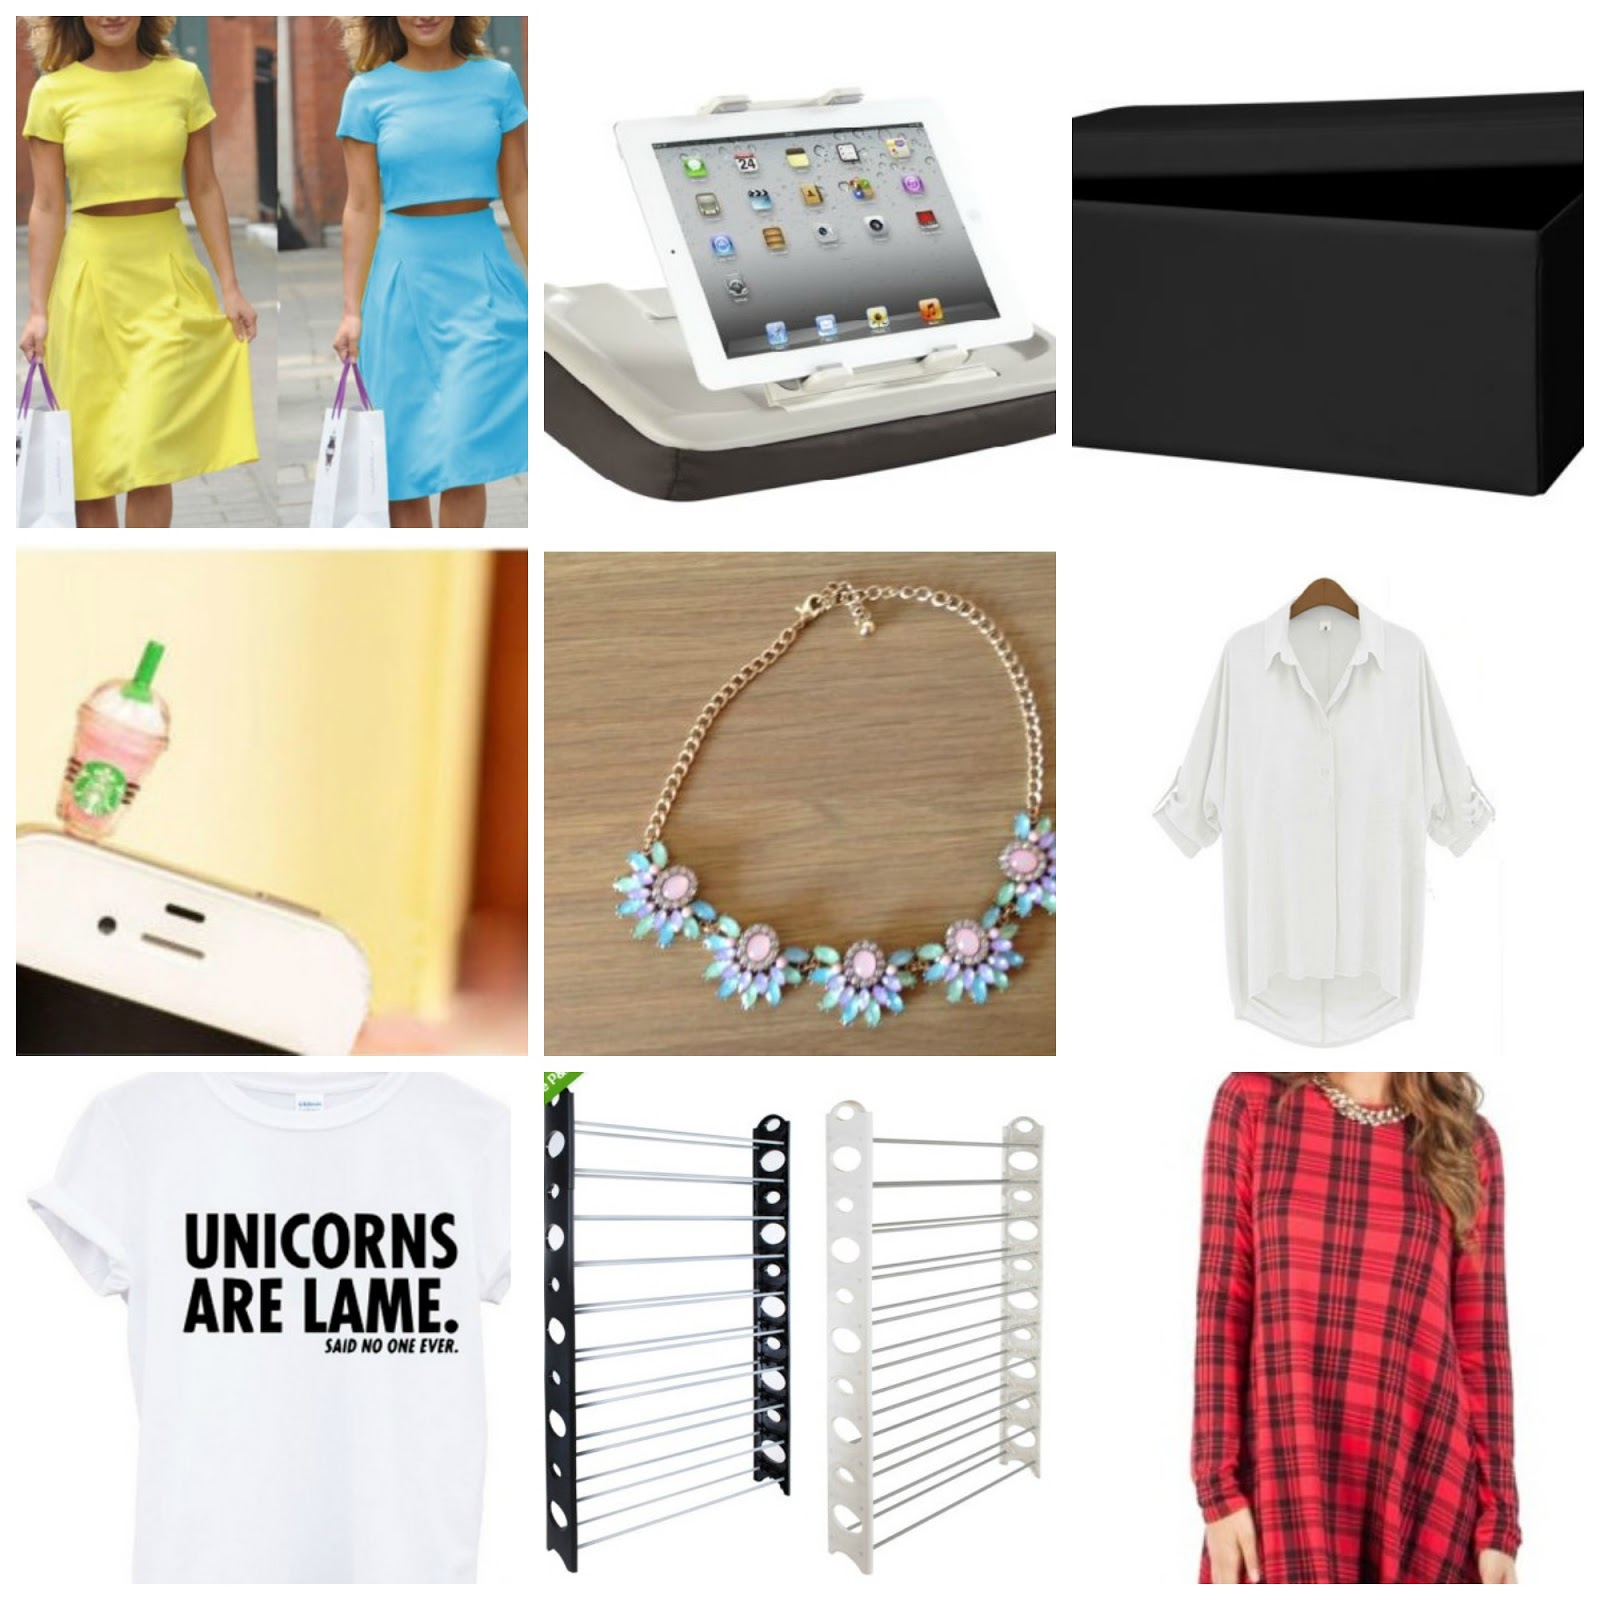 co-ord skirt an top set, starbucks phone jax, statement necklace, tartan dress, white shirt, unicorn tshirt, shoe rack, ottoman and ipad stand and table